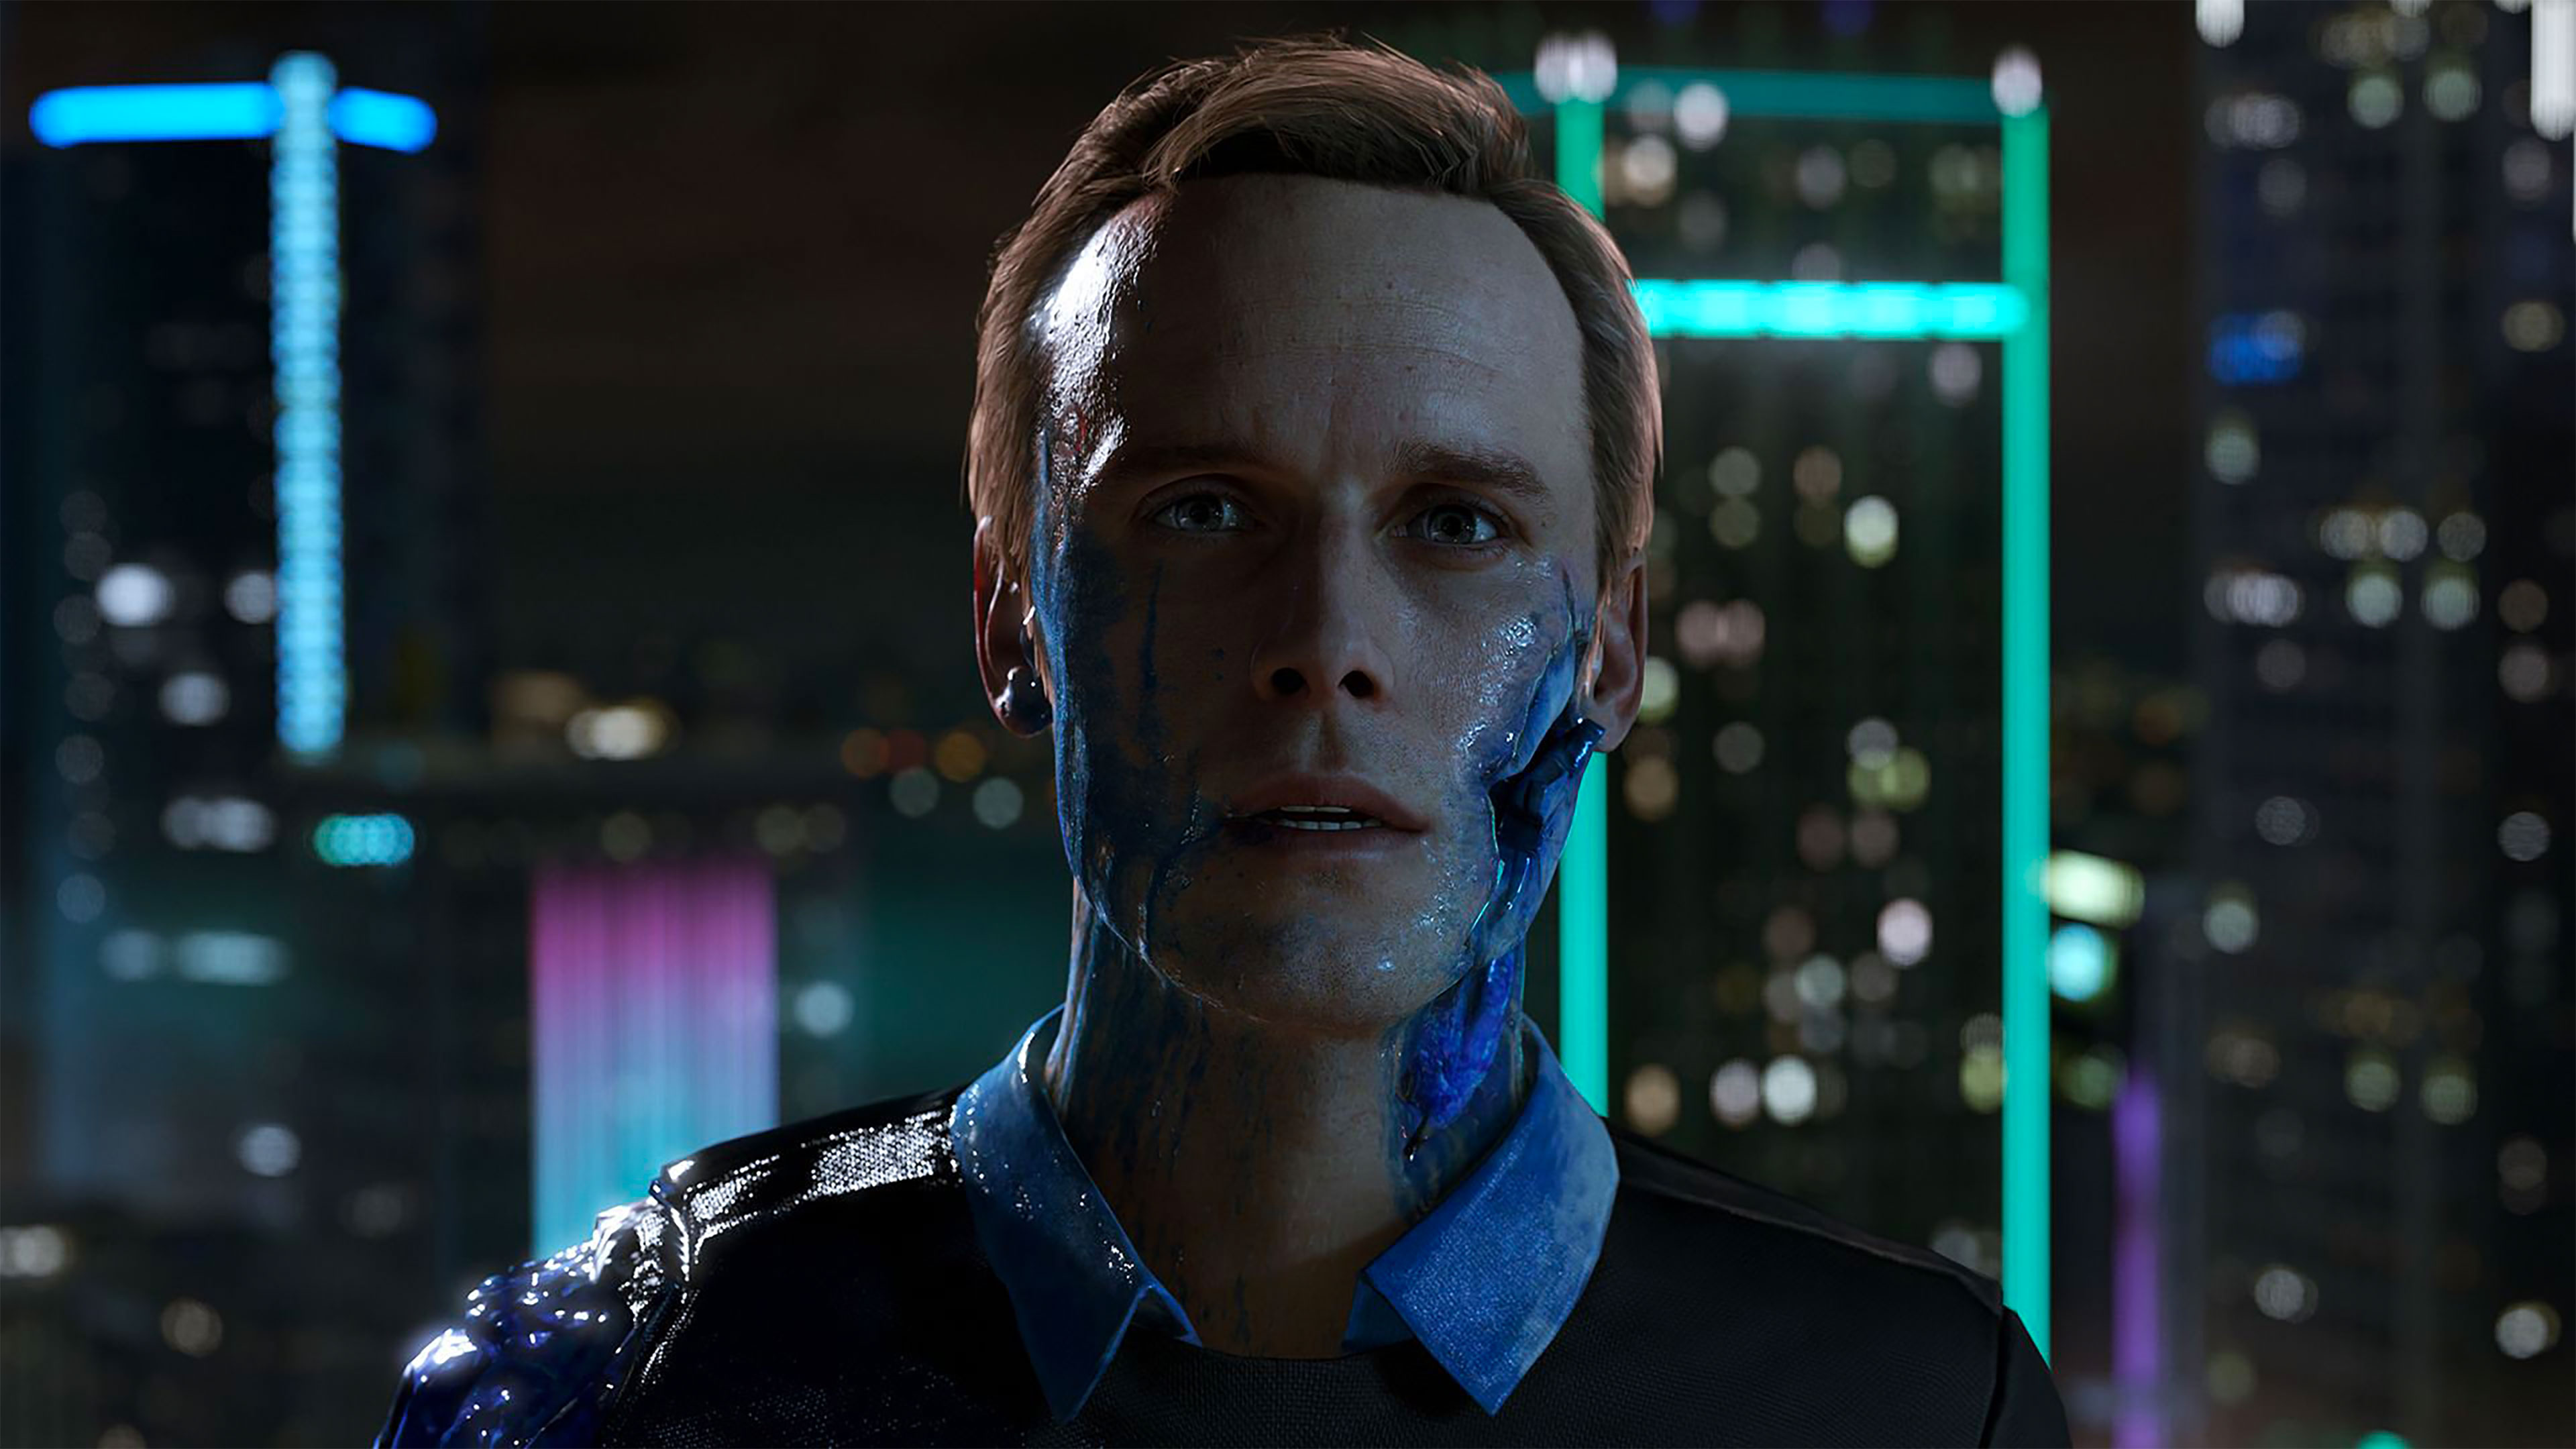 Detroit Become Human Wallpapers In Ultra Hd 4k Gameranx